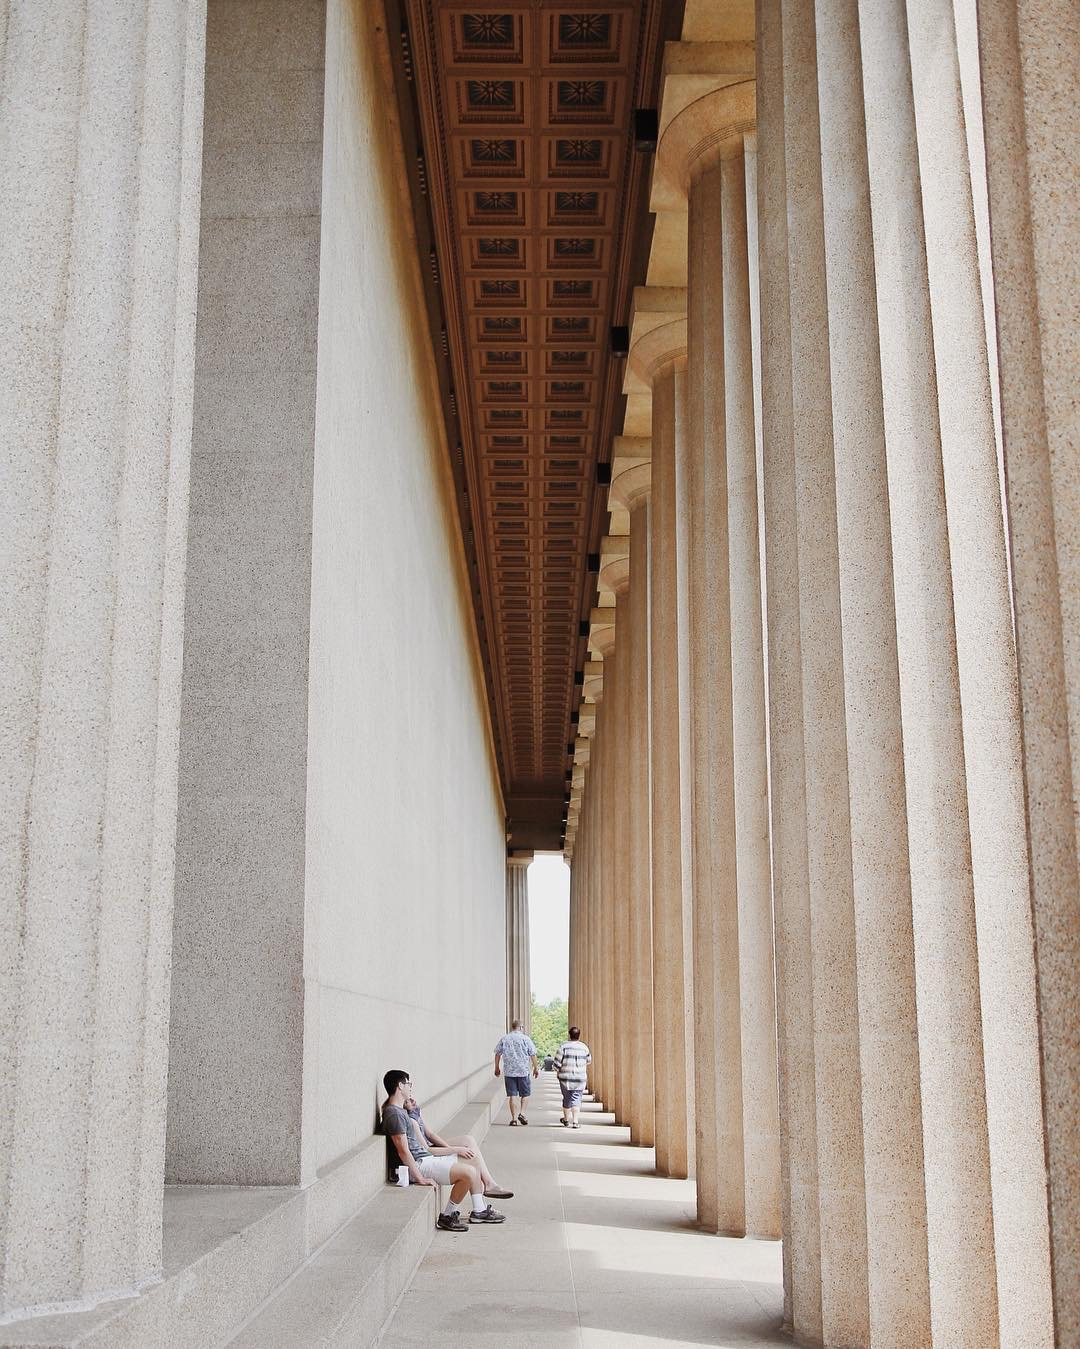 The Parthenon replica, Nashville TN. photo by: instagram.com/benlalisan